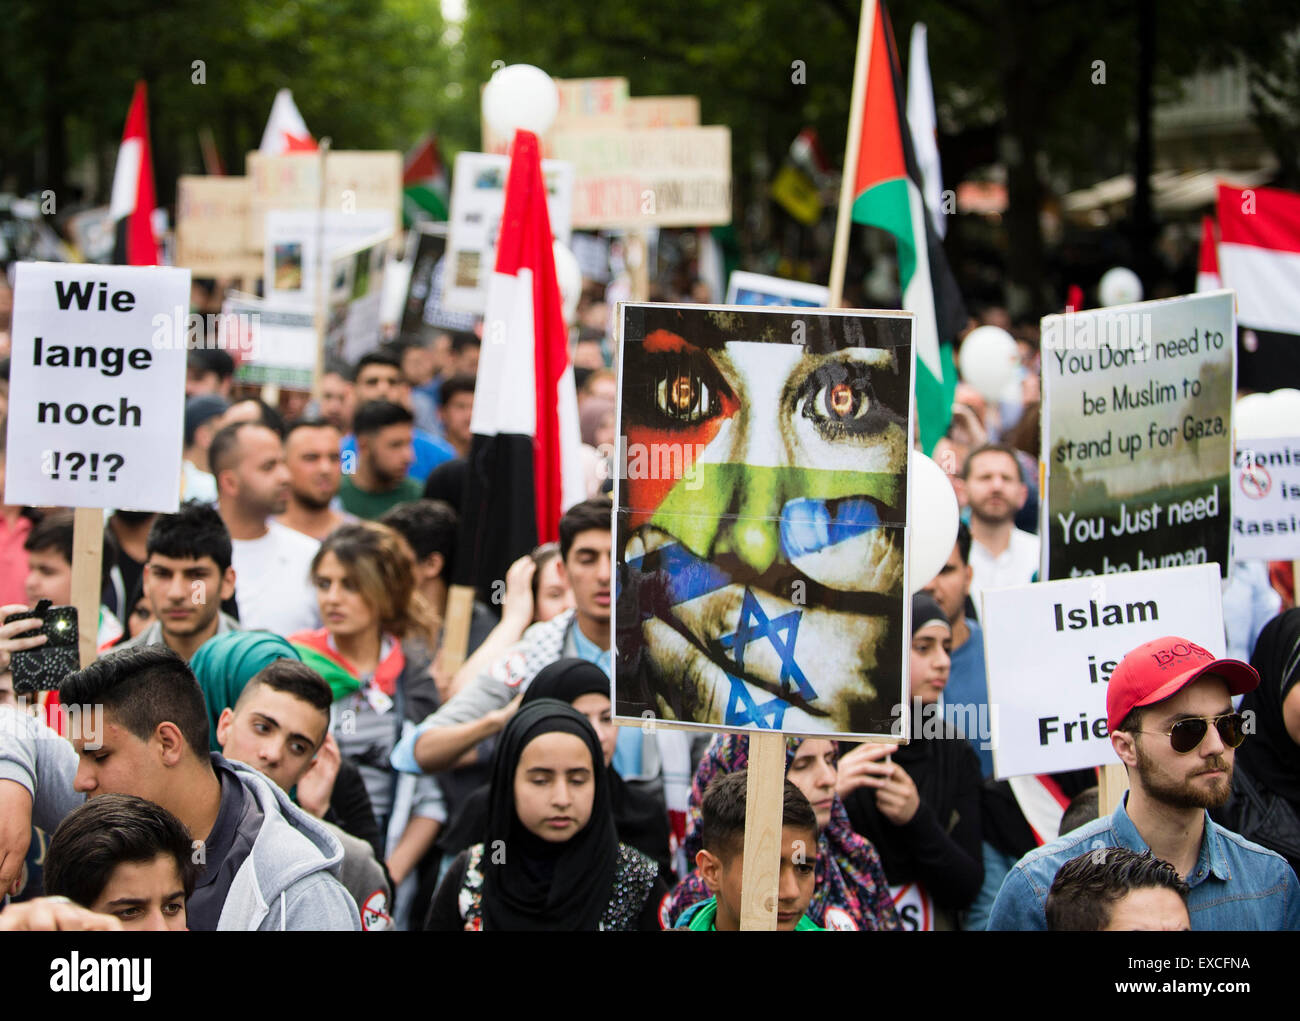 Berlin, Germany. 11th July, 2015. People march during a rally held in support of the Palestinian Territories and - Stock Image